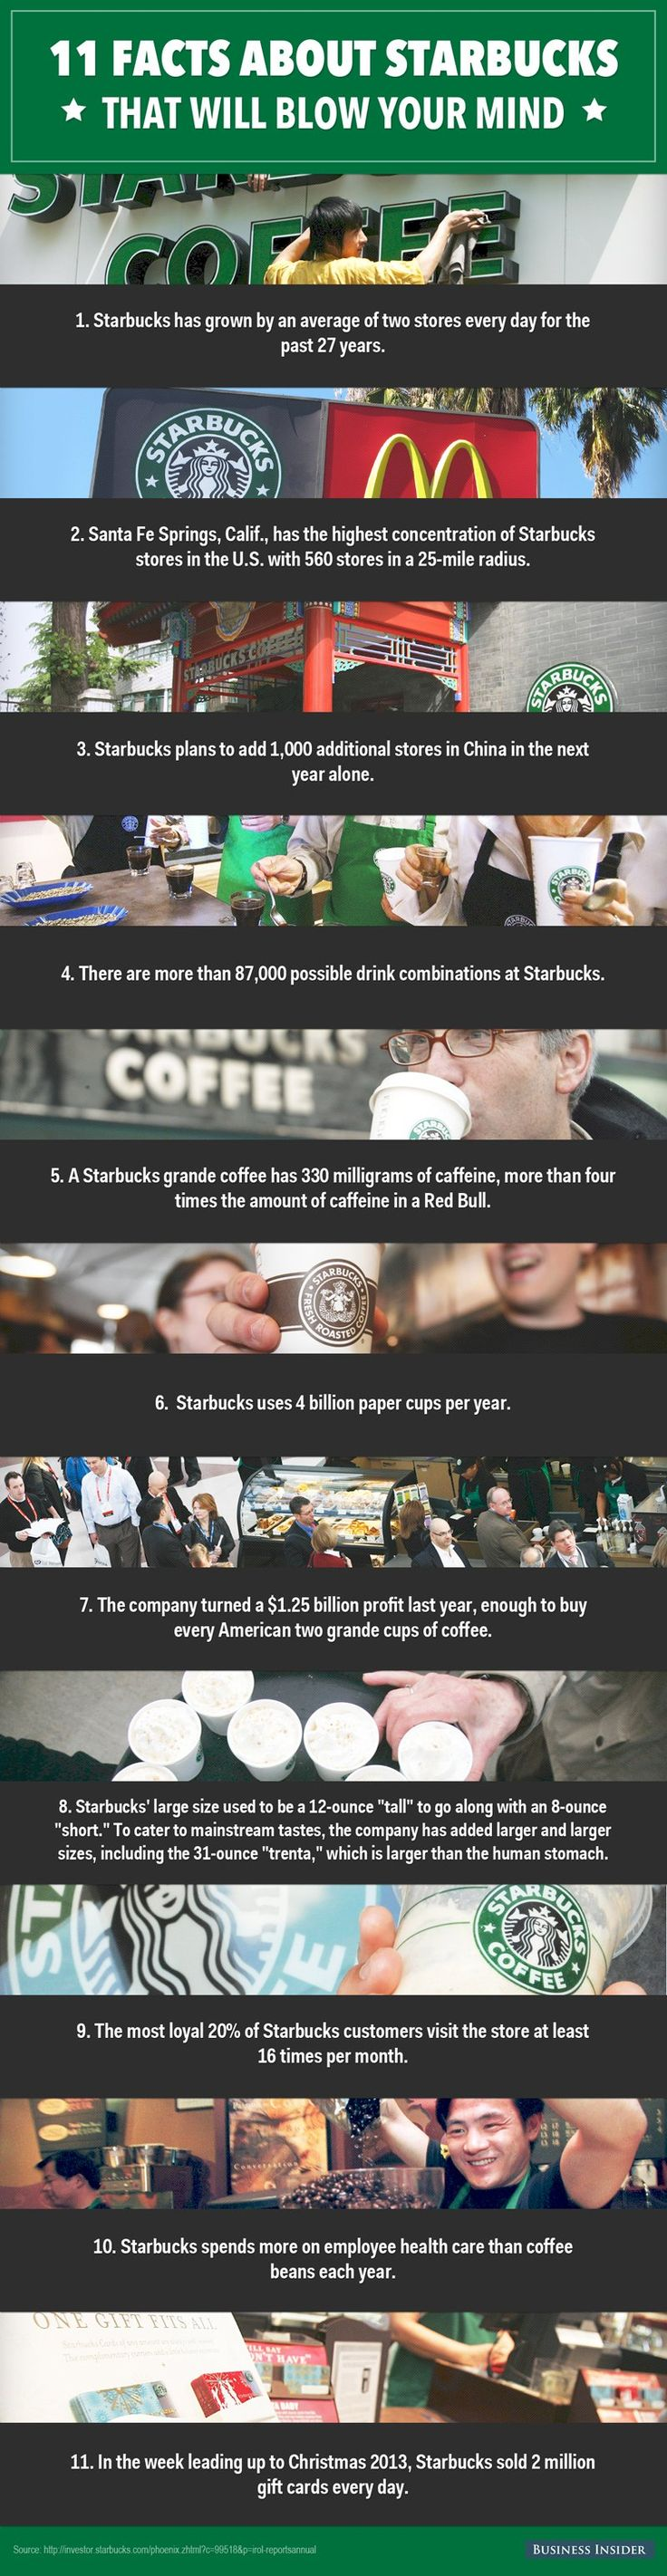 """One of my inspirations for business planning and """"marketing"""" - CEO once likened the experience of going to Starbucks as """"theatre"""". #Fascinating"""